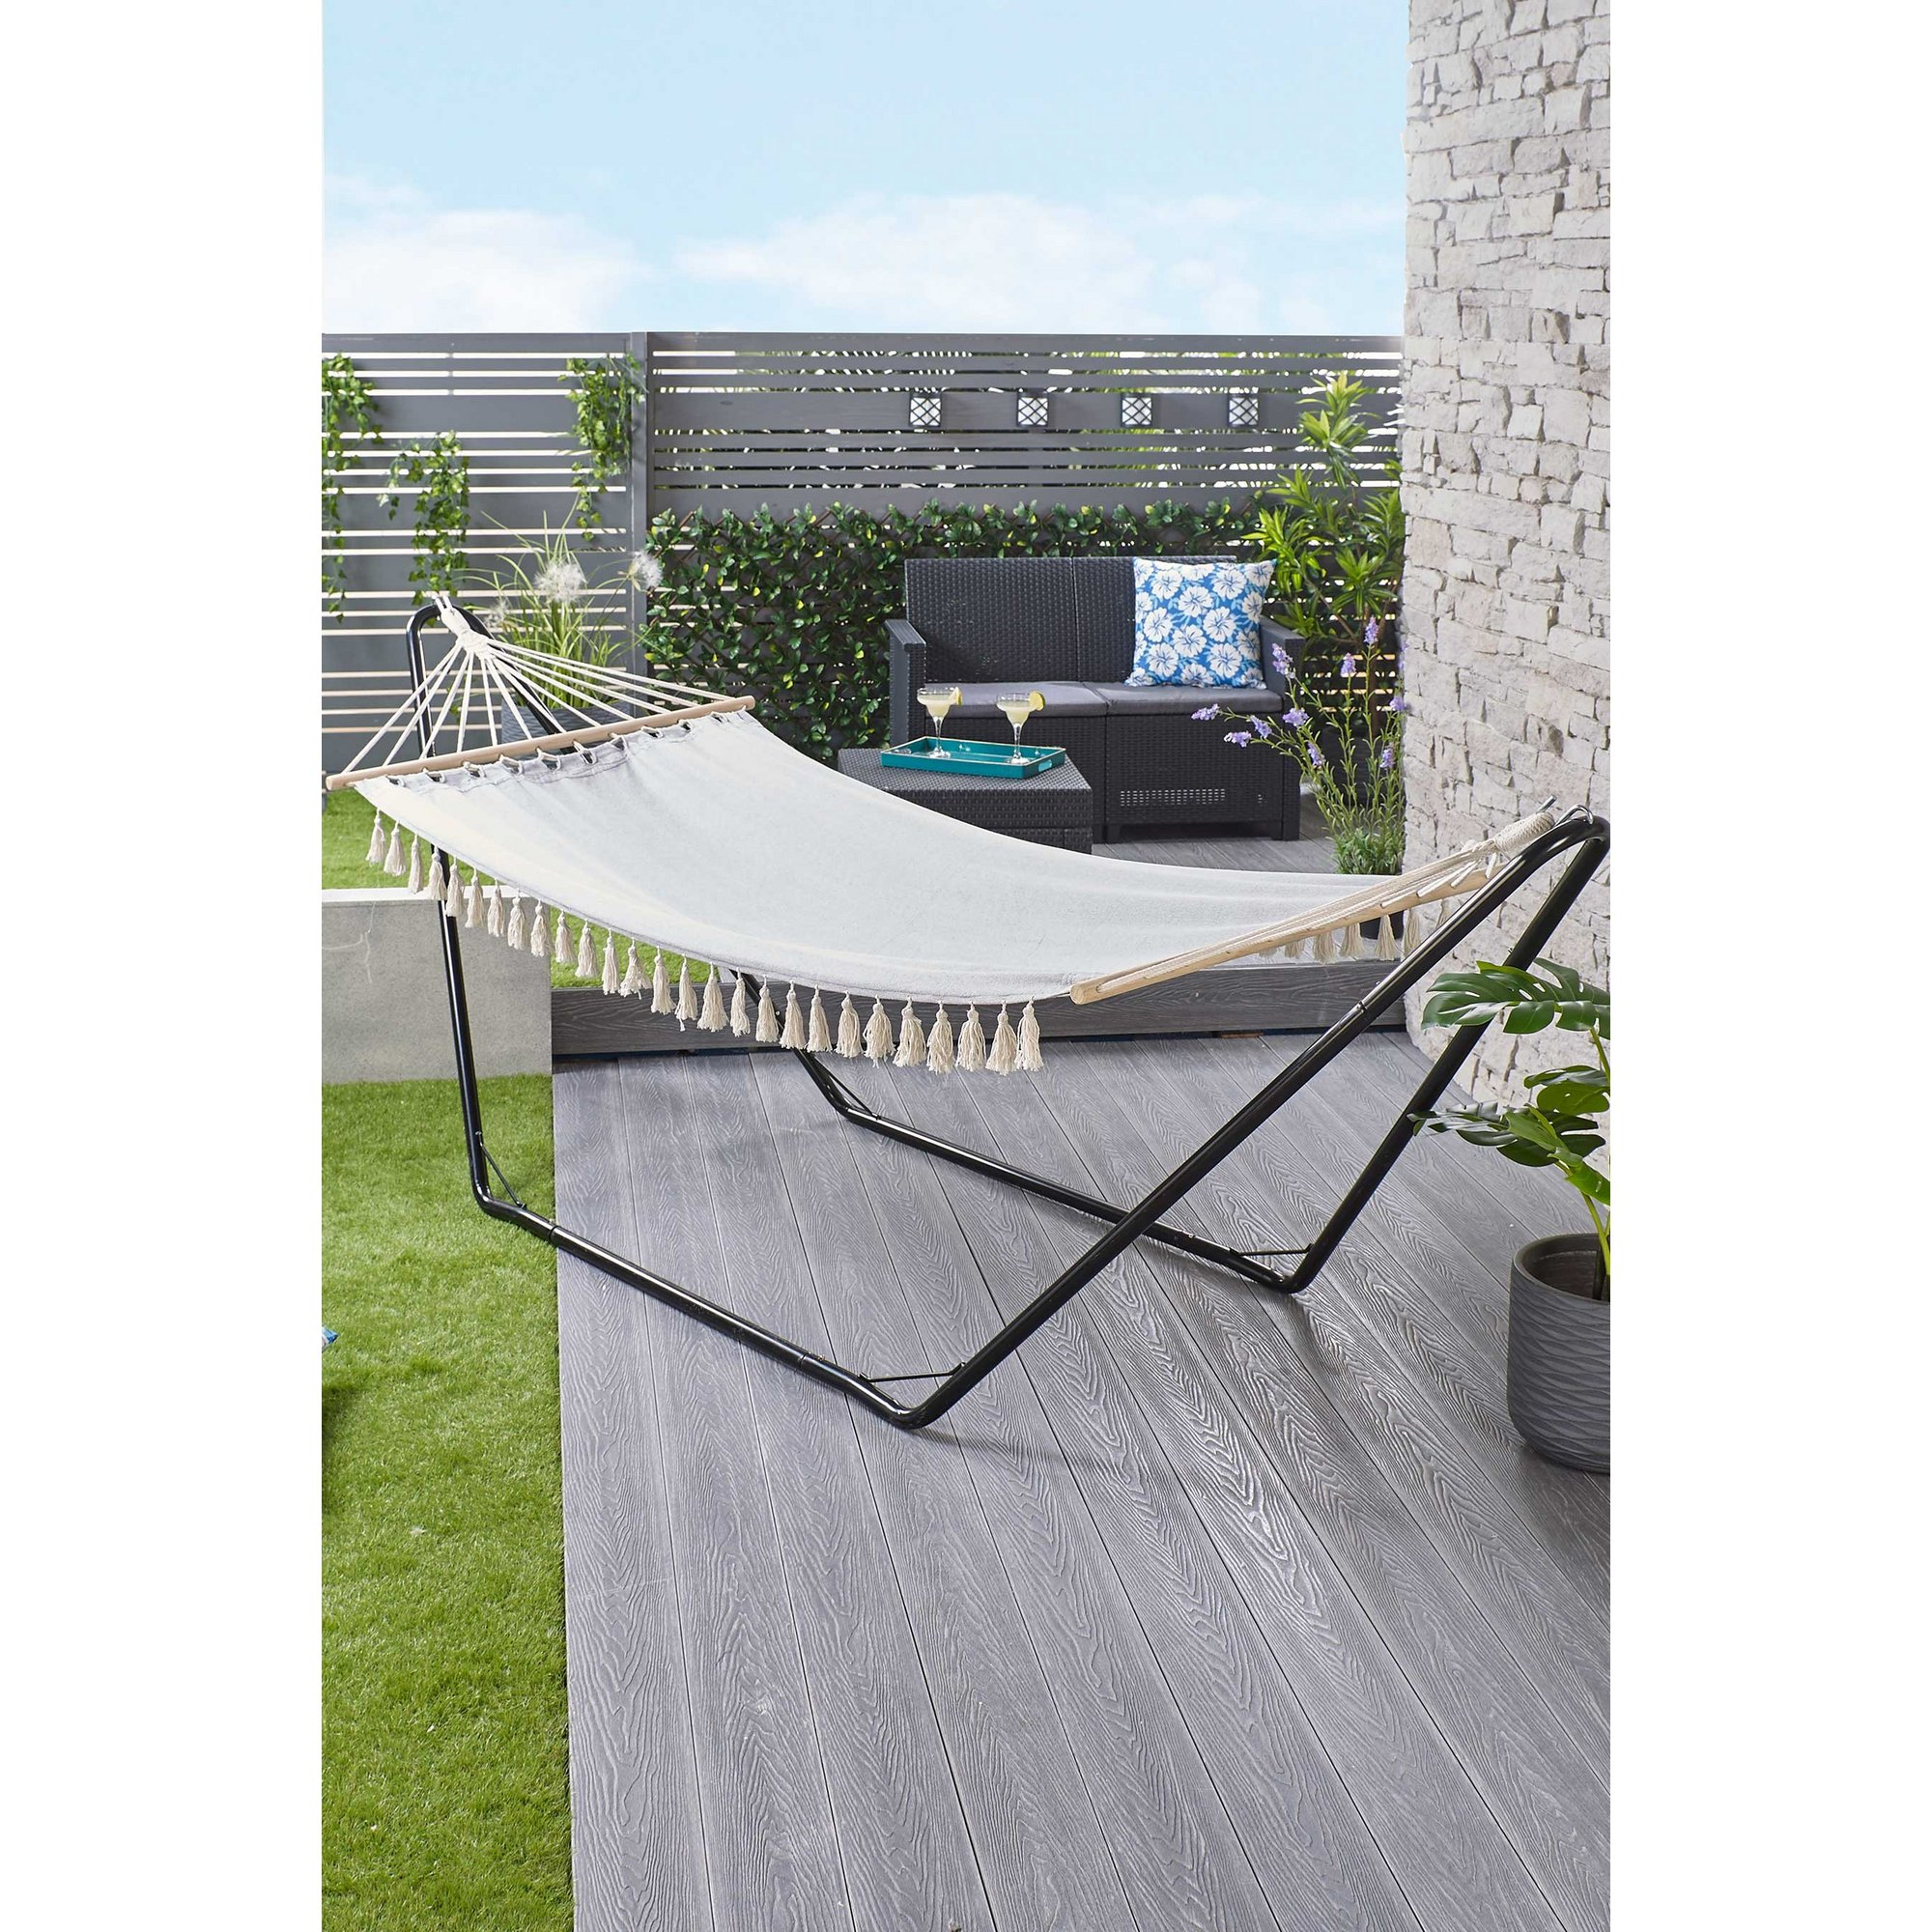 Image of Hammock with Stand